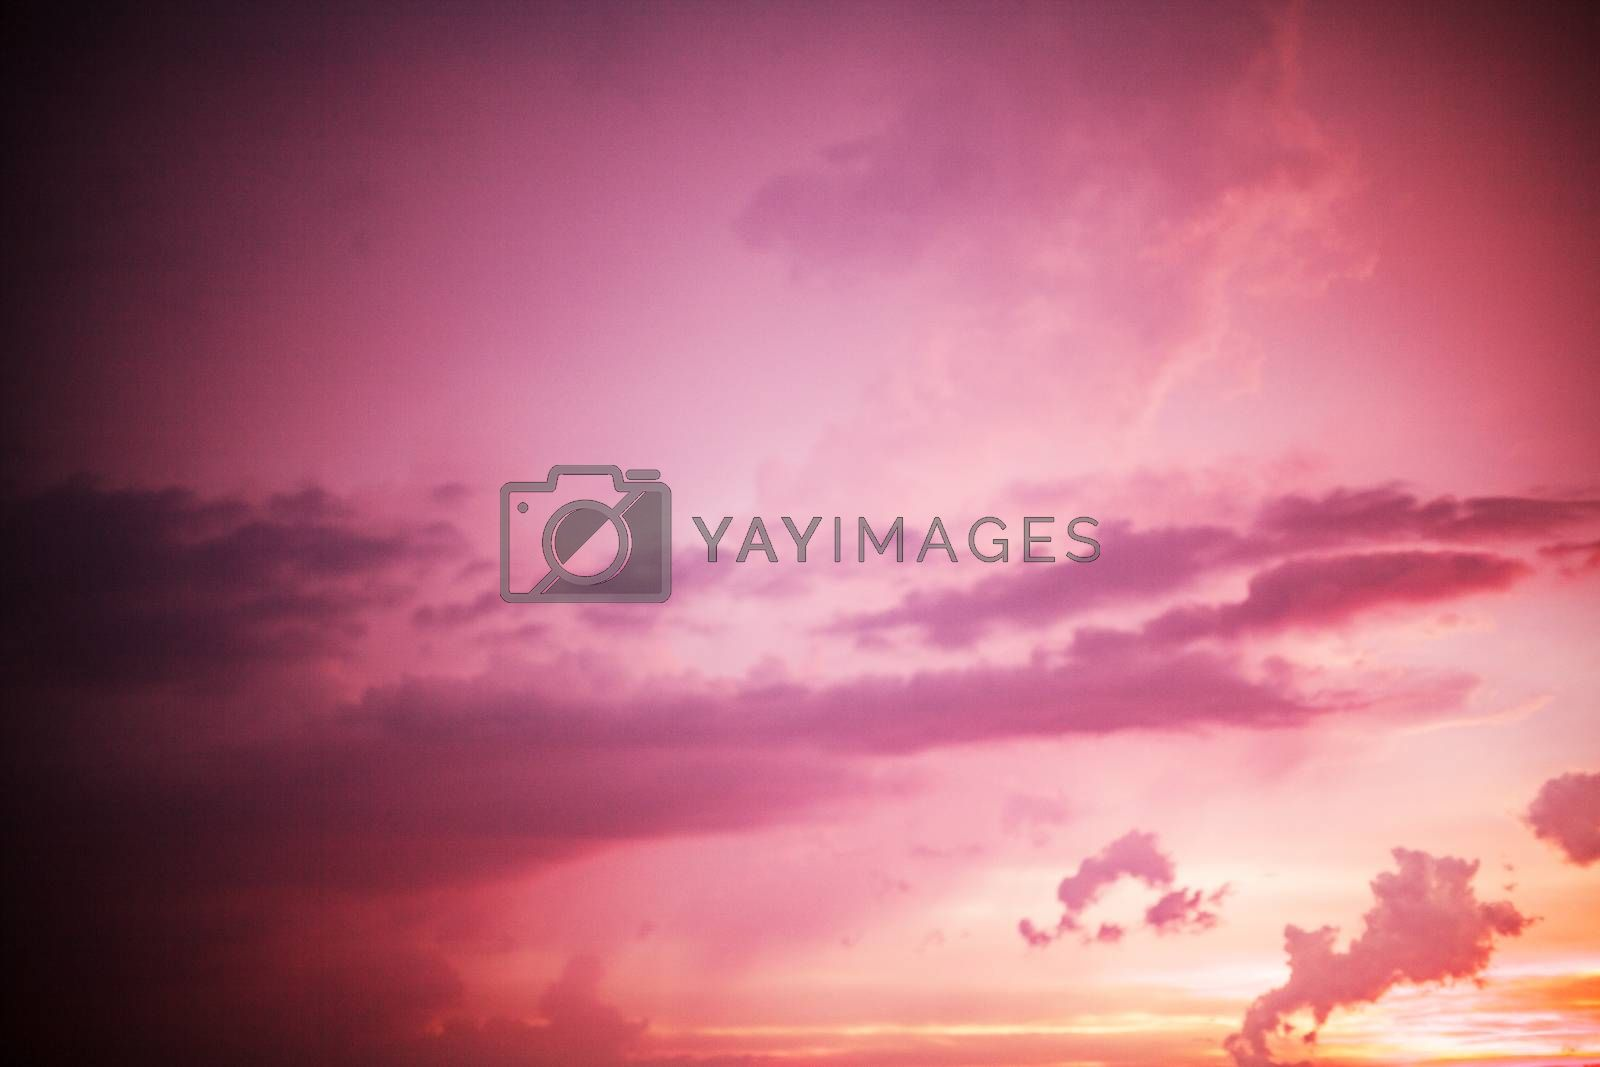 Spectacular purple and orange sunset background sky texture for weather, environmental and nature concepts, full frame